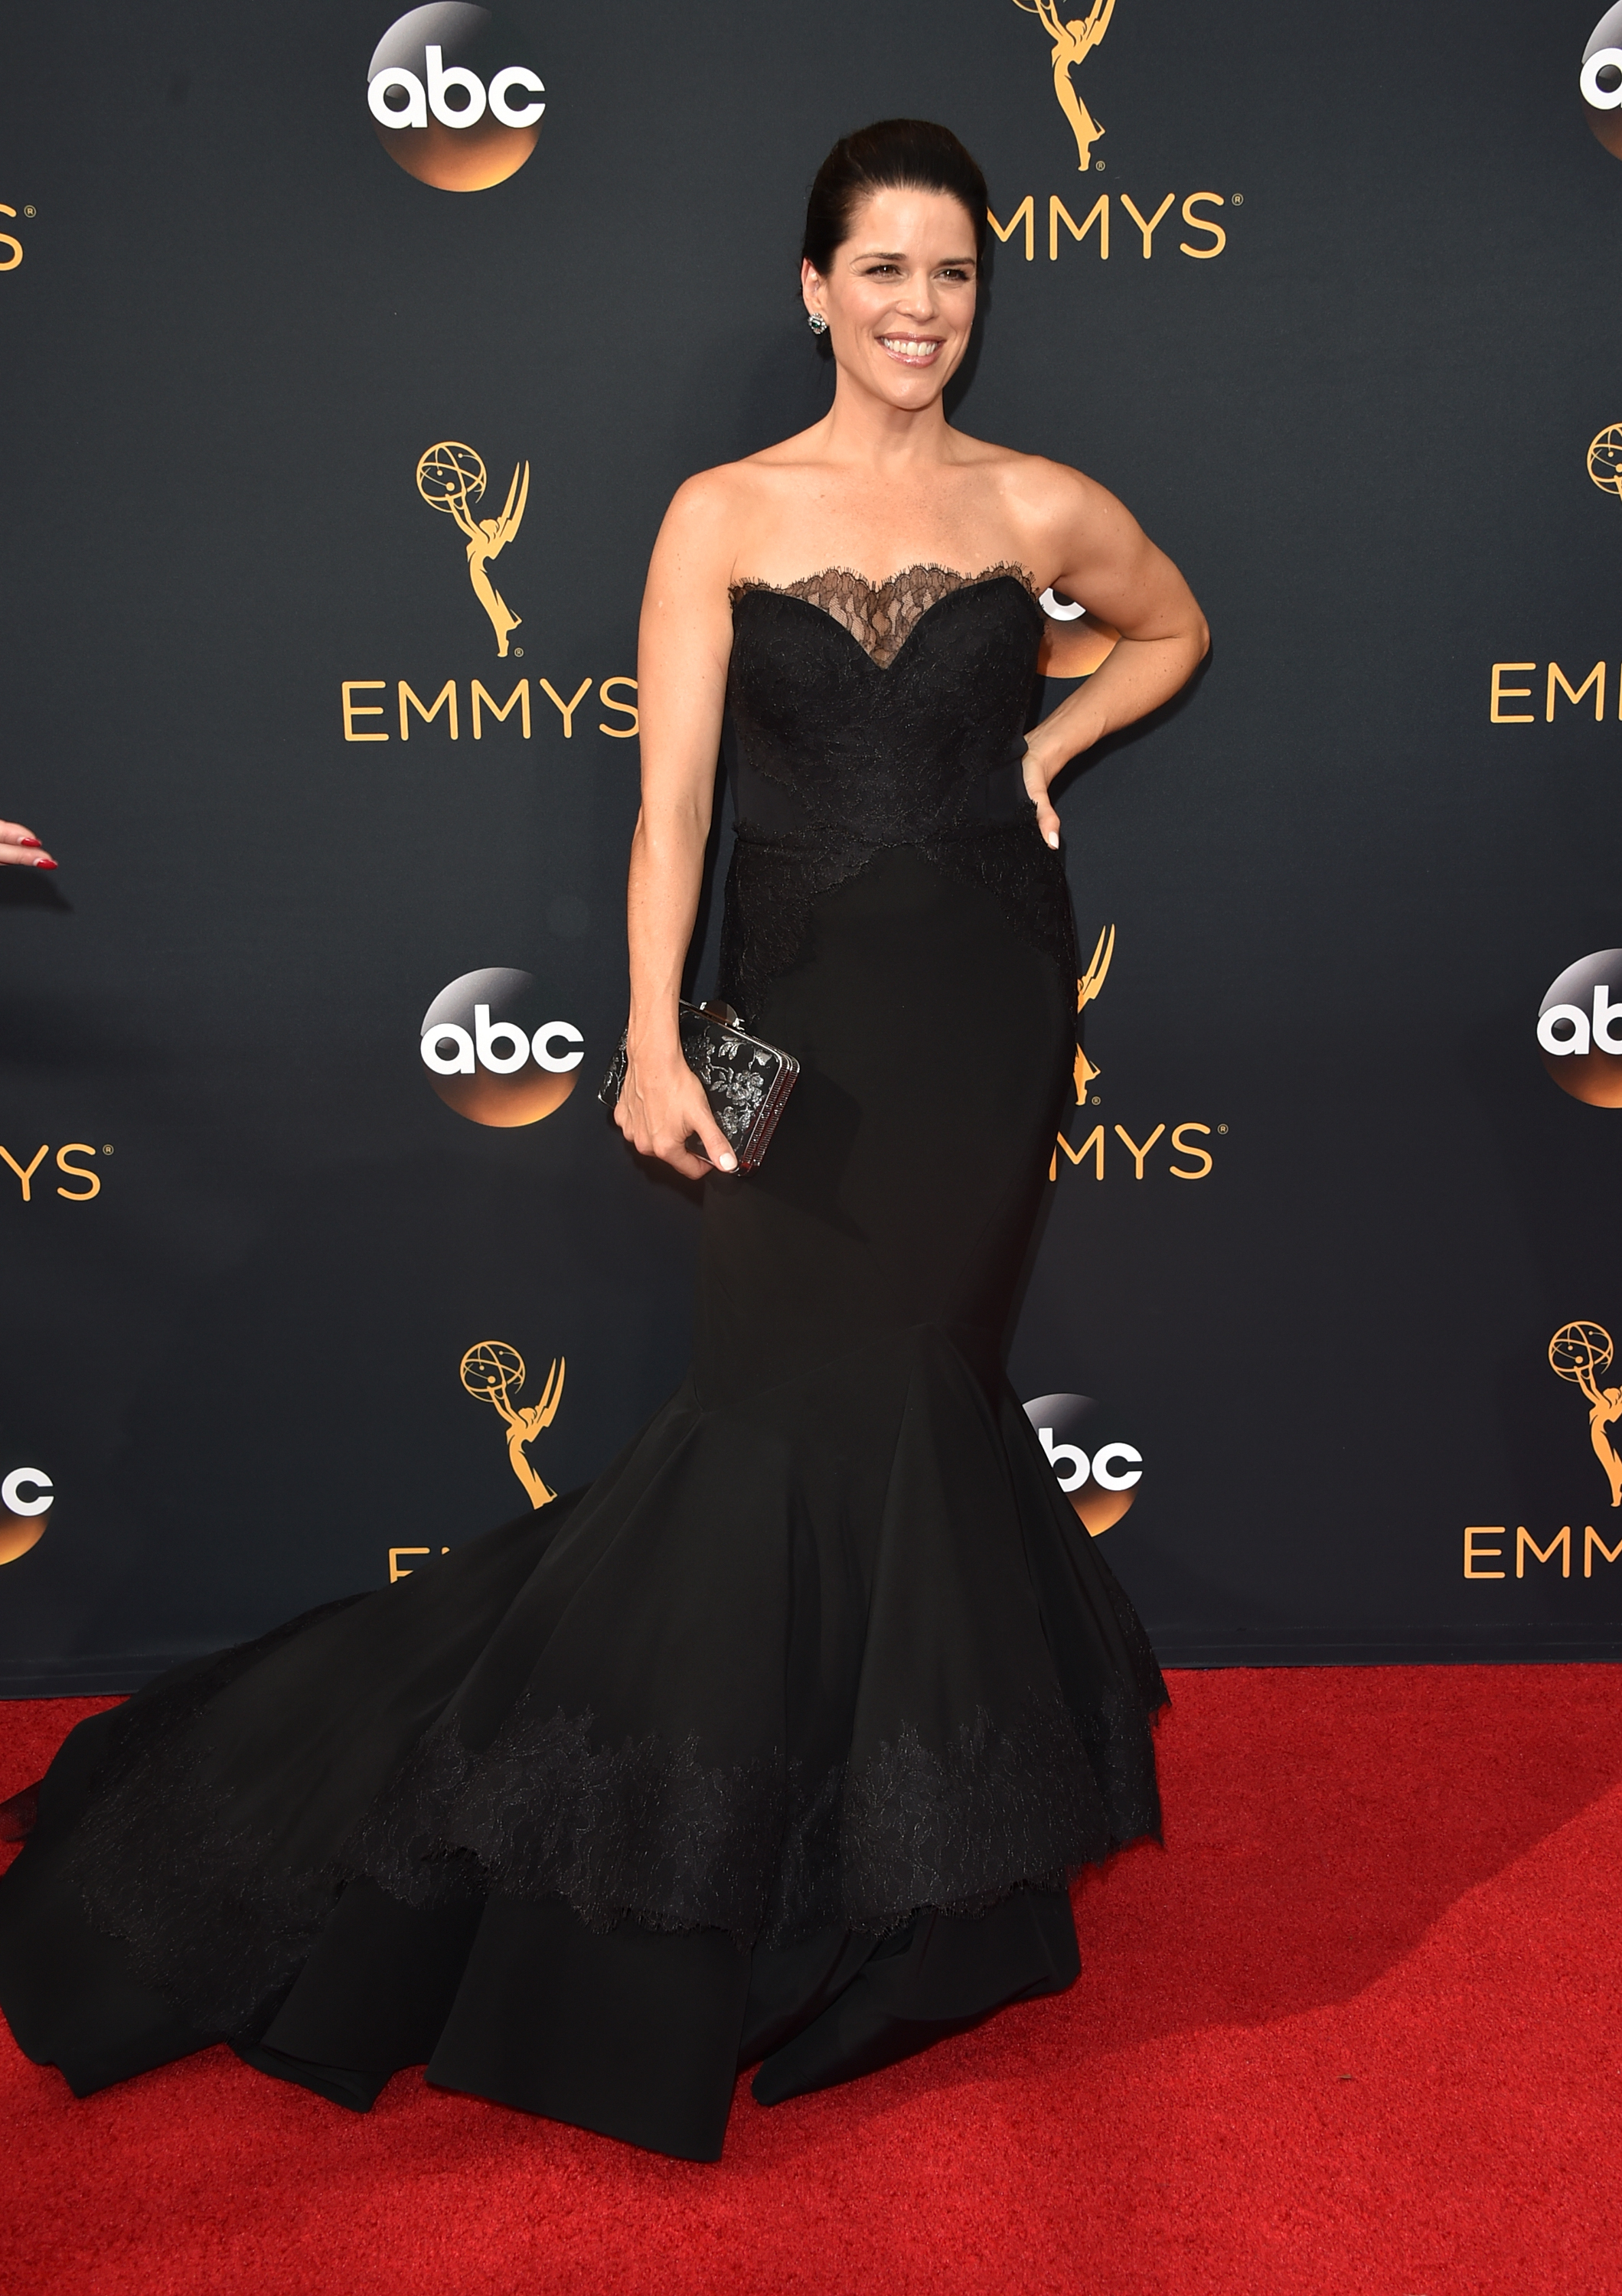 Neve Campbell arrives at the 68th Annual Primetime Emmy Awards at Microsoft Theater on Sept. 18, 2016 in Los Angeles.